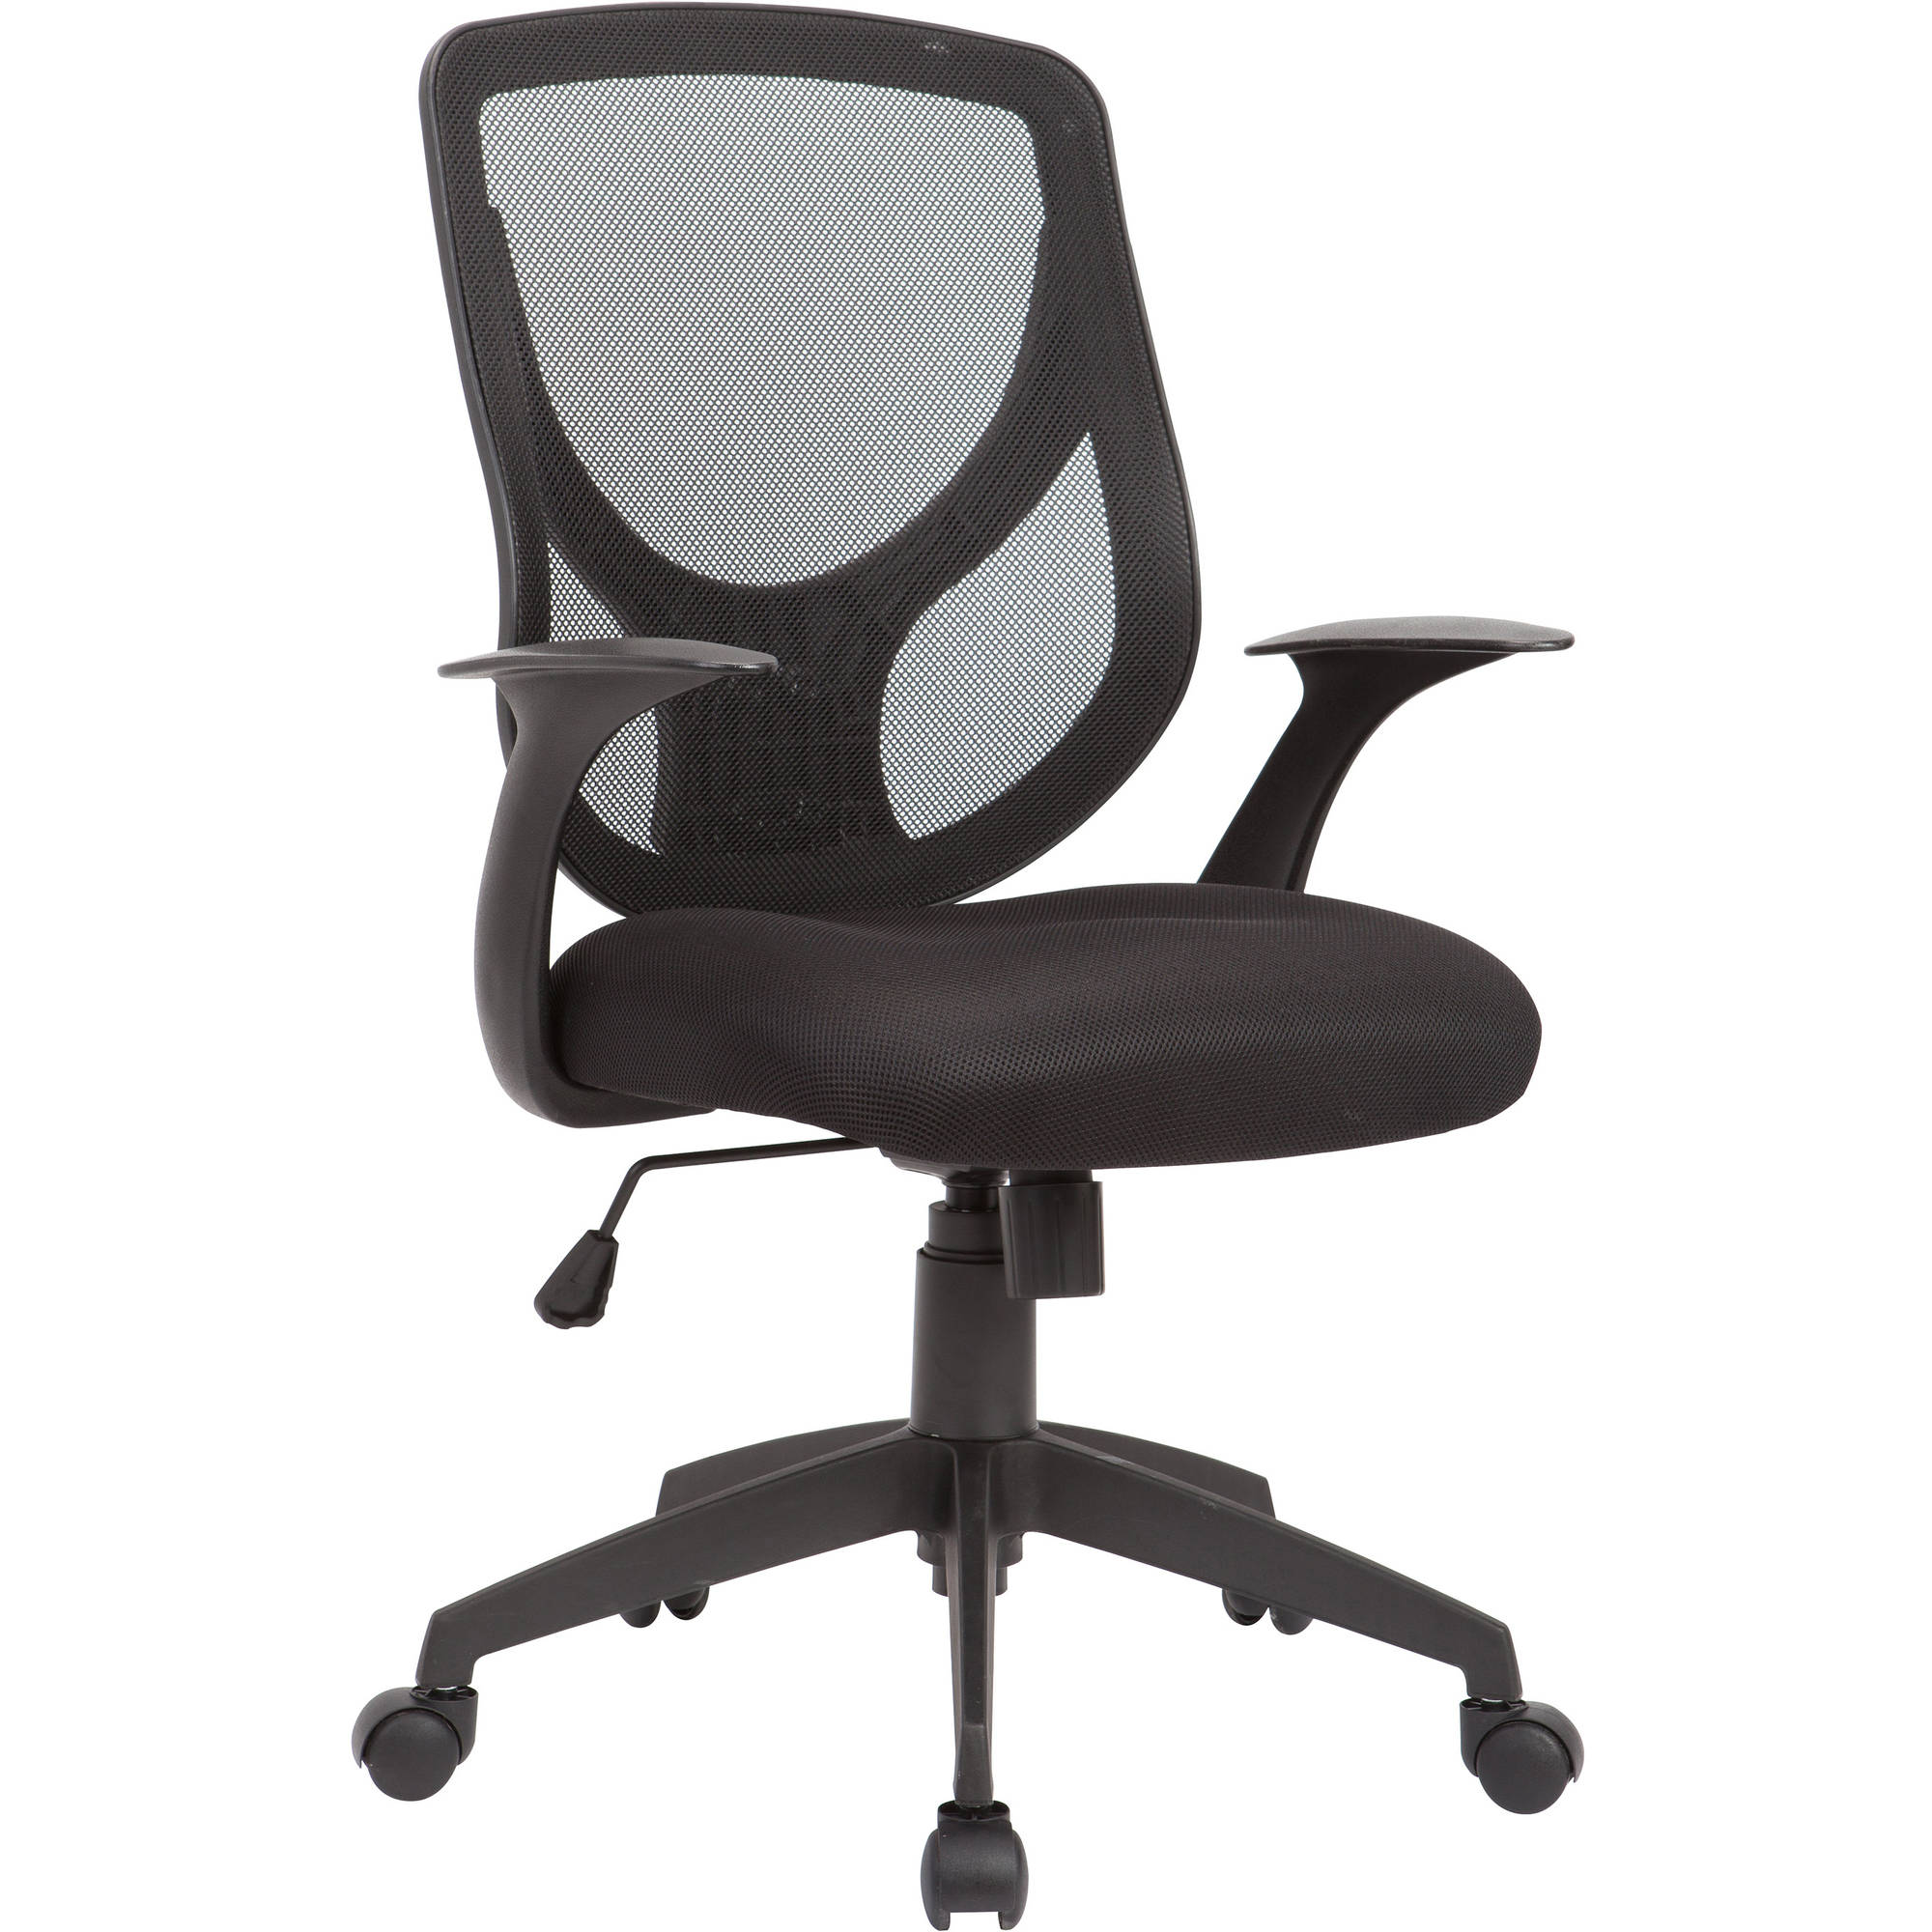 How To Adjust Office Chair Ac Pacific Adjustable Swivel Office Chair Mesh Seat And Back Black